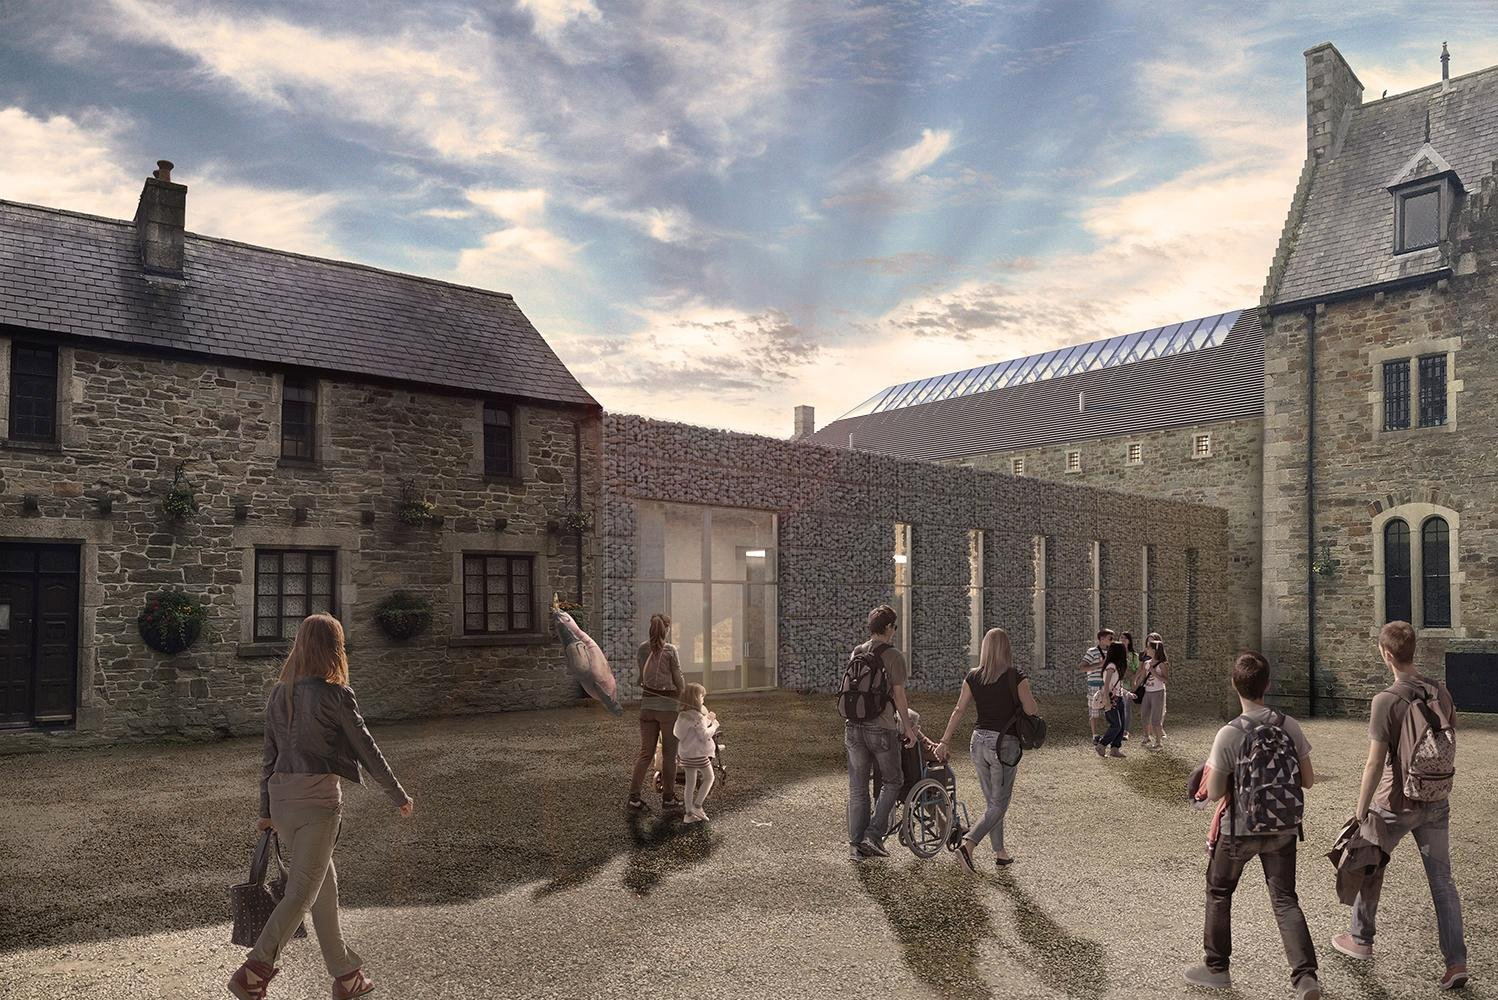 """As part of the renovation work, there will be a new 1,200-square-meter (12,917-square-foot) building housing an attraction called """"Dark Walk""""."""